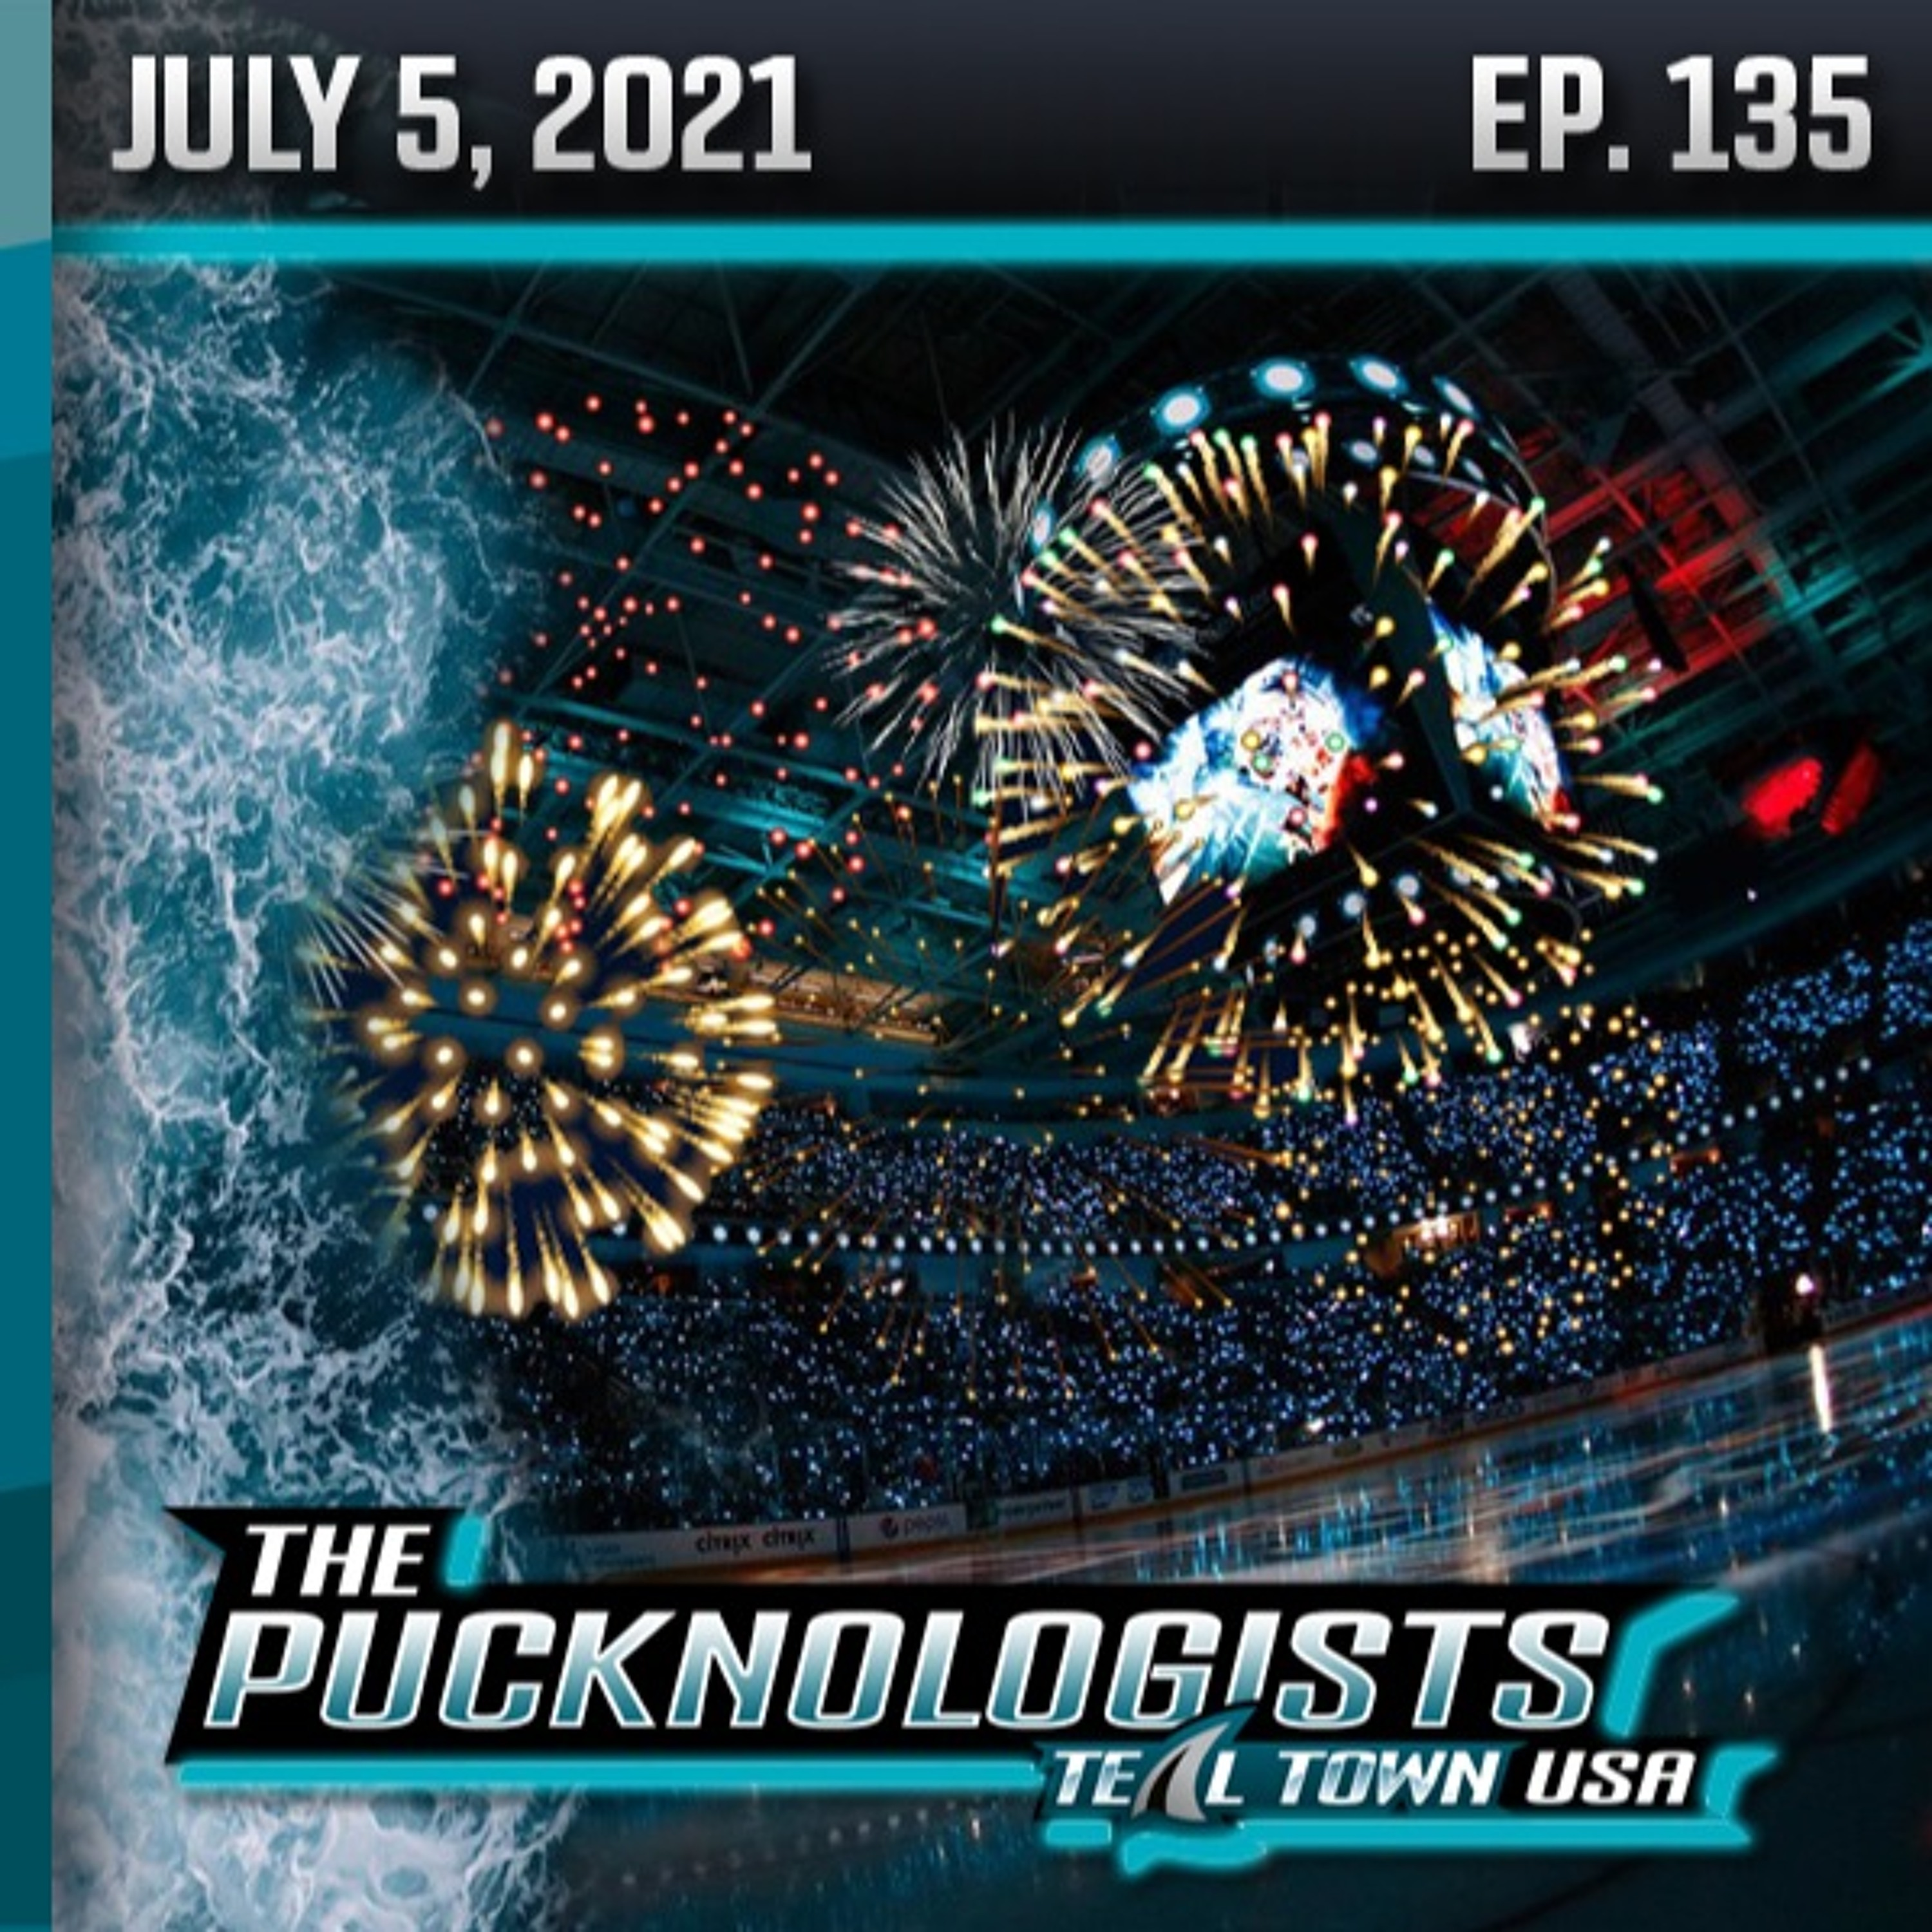 Kane Rumors, Becher Media Call, NHL Announcements – The Pucknologists 135